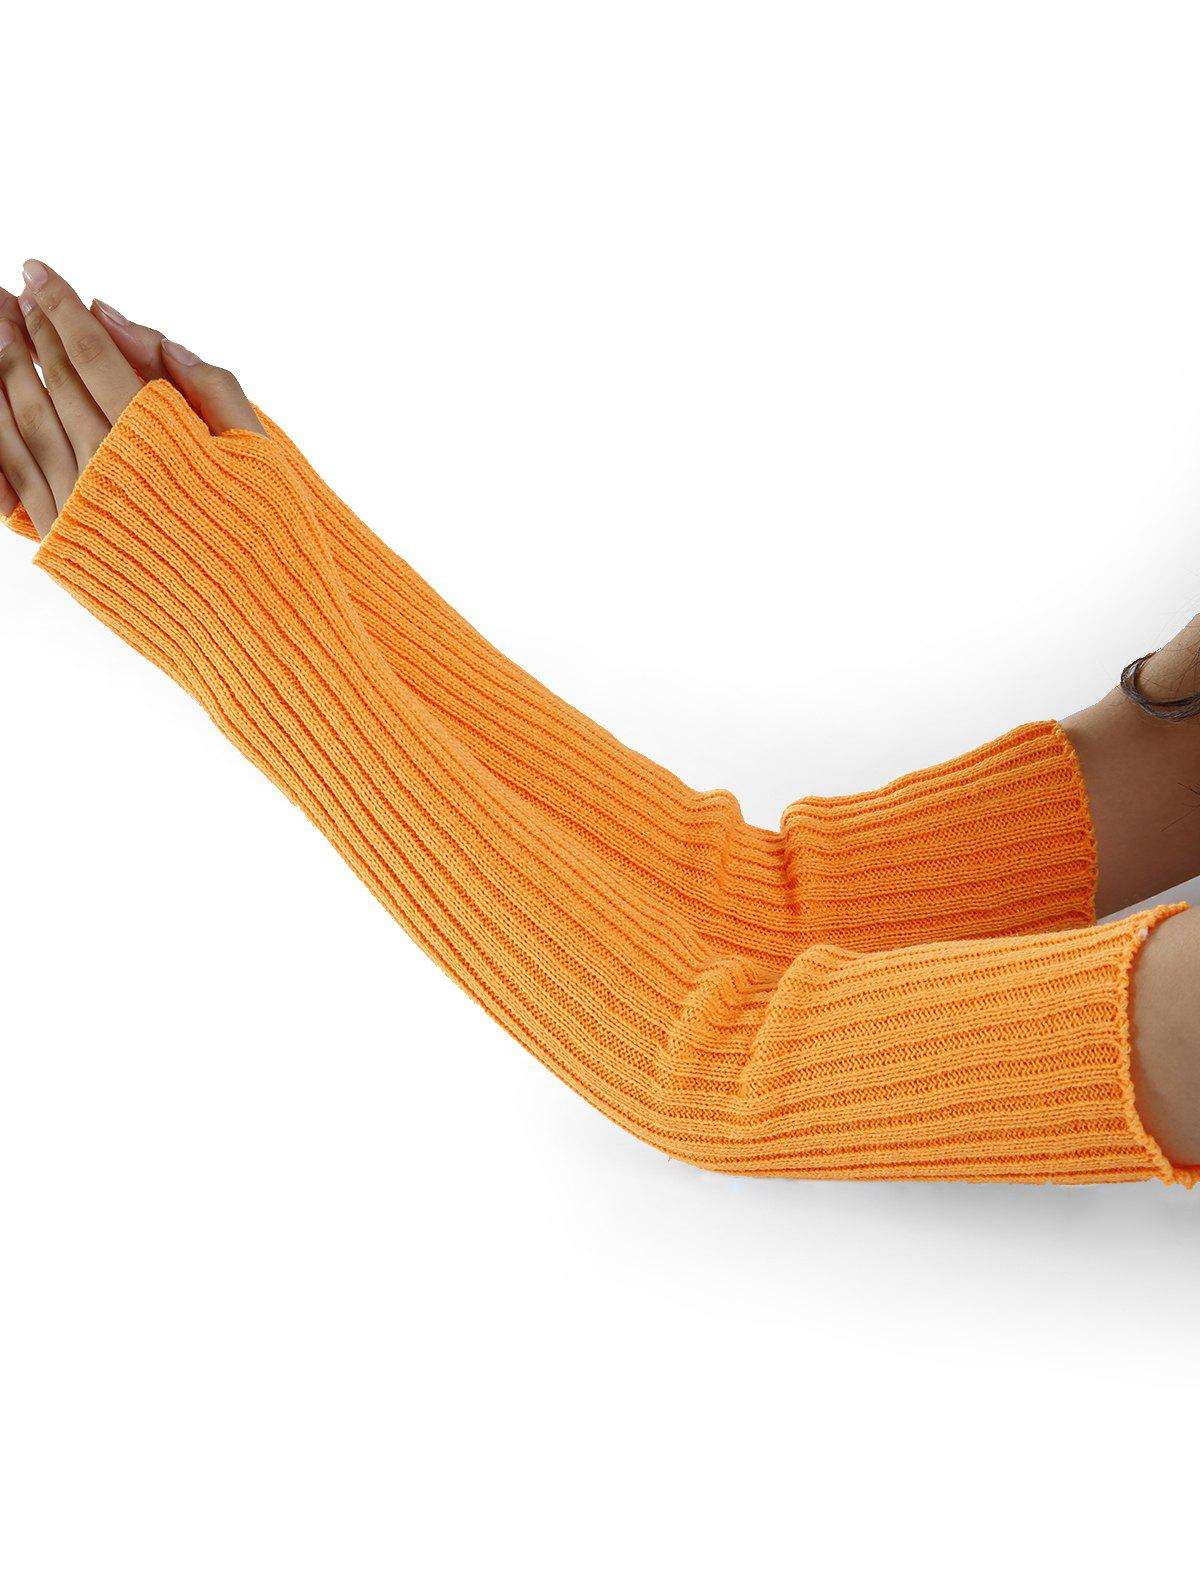 Soft Vertical Striped Pattern Crochet Knitted Arm Warmers - PEARL KUMQUAT